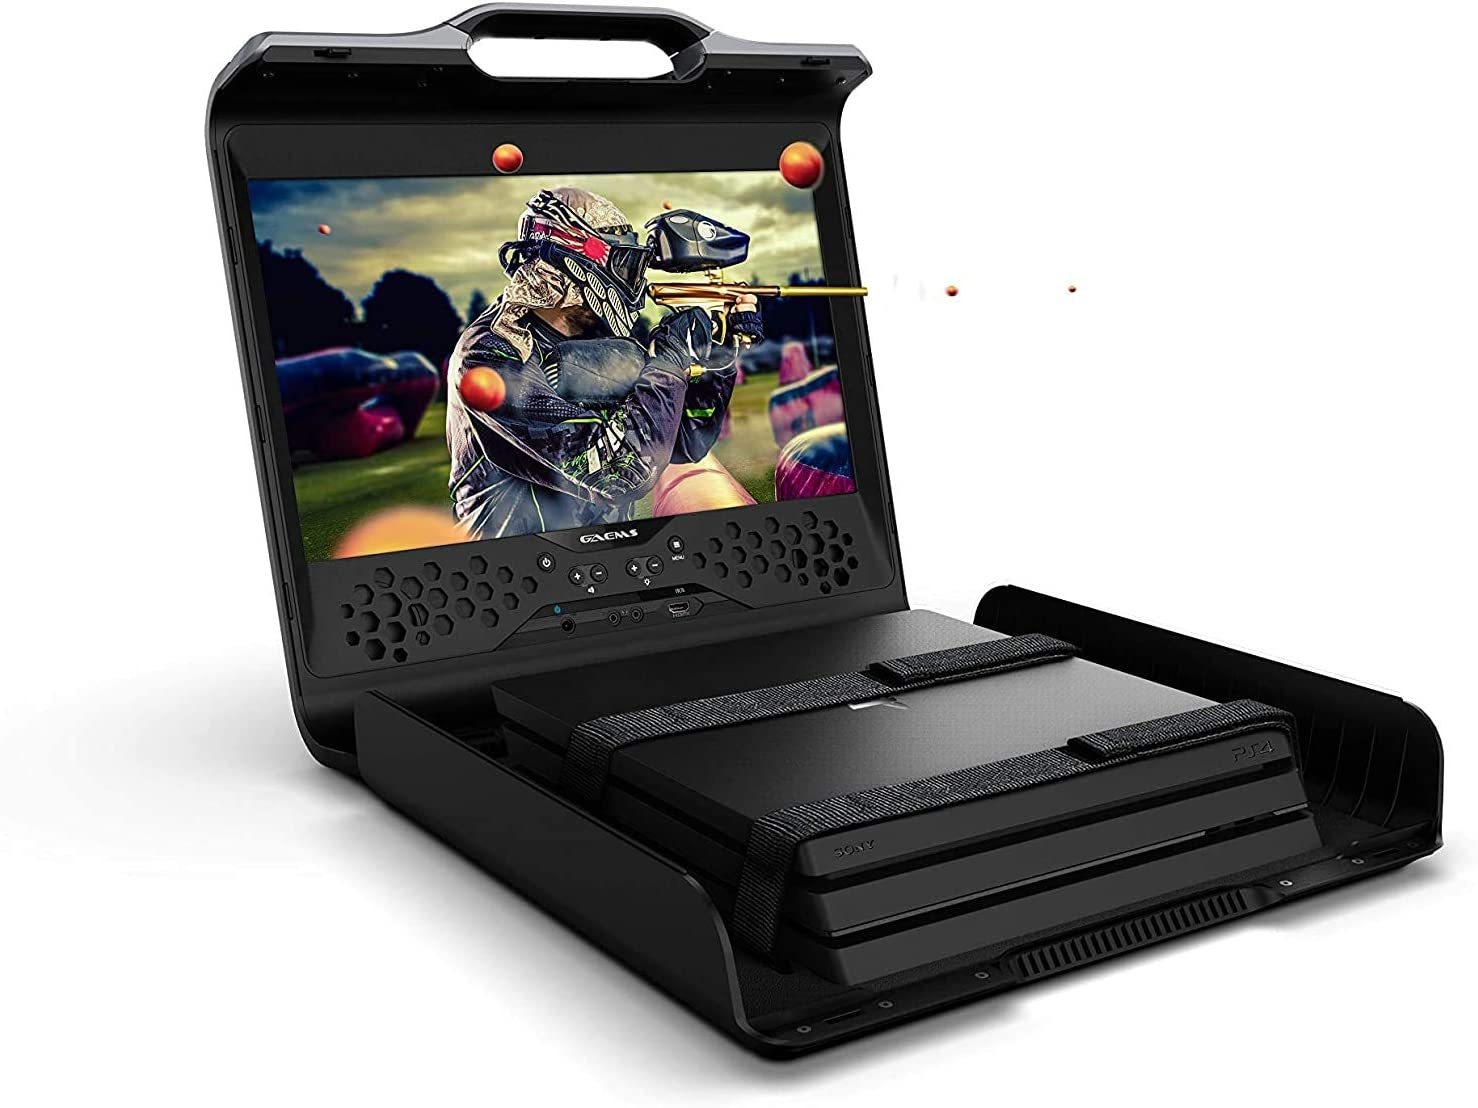 GAEMS Sentinel Pro XP 1080P Portable Gaming Monitor | Compatible with Xbox One X, Xbox One S, PlayStation 4 Pro, PlayStation 4, PS4 Slim (Consoles Not Included) (PS4/) [Importación inglesa]